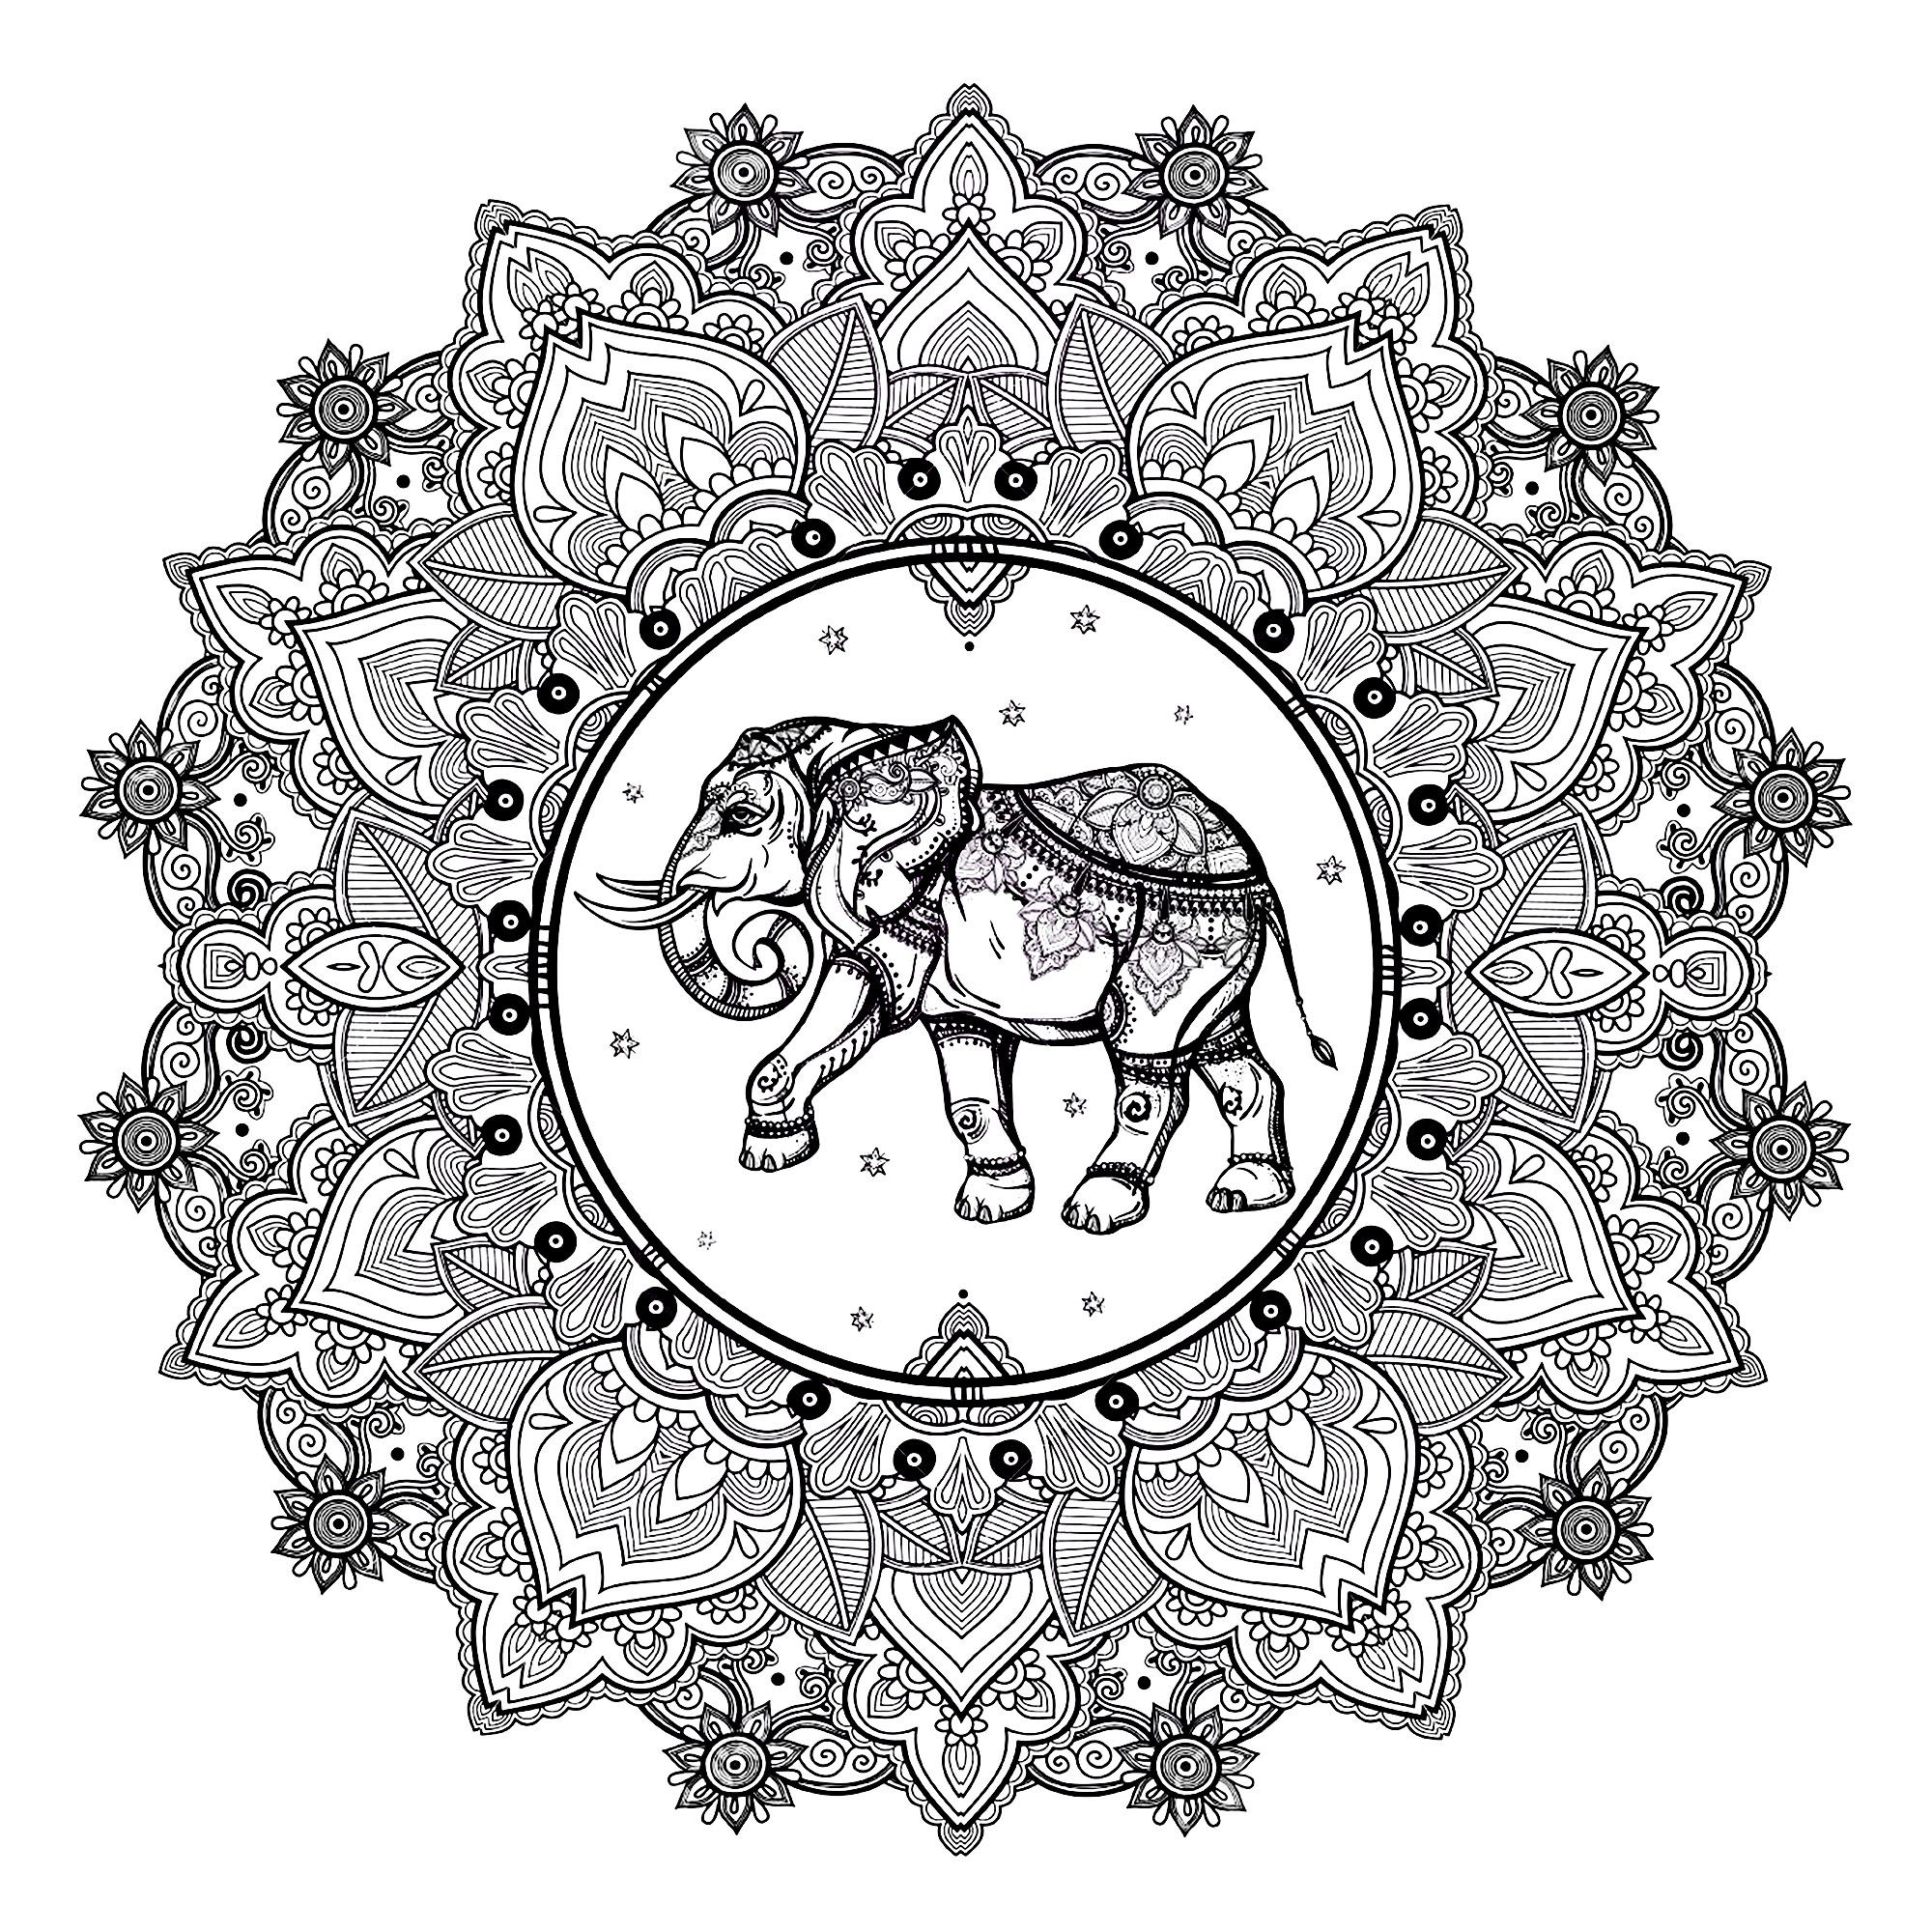 Mandala to print and color, with beautiful elephant in center | From ...